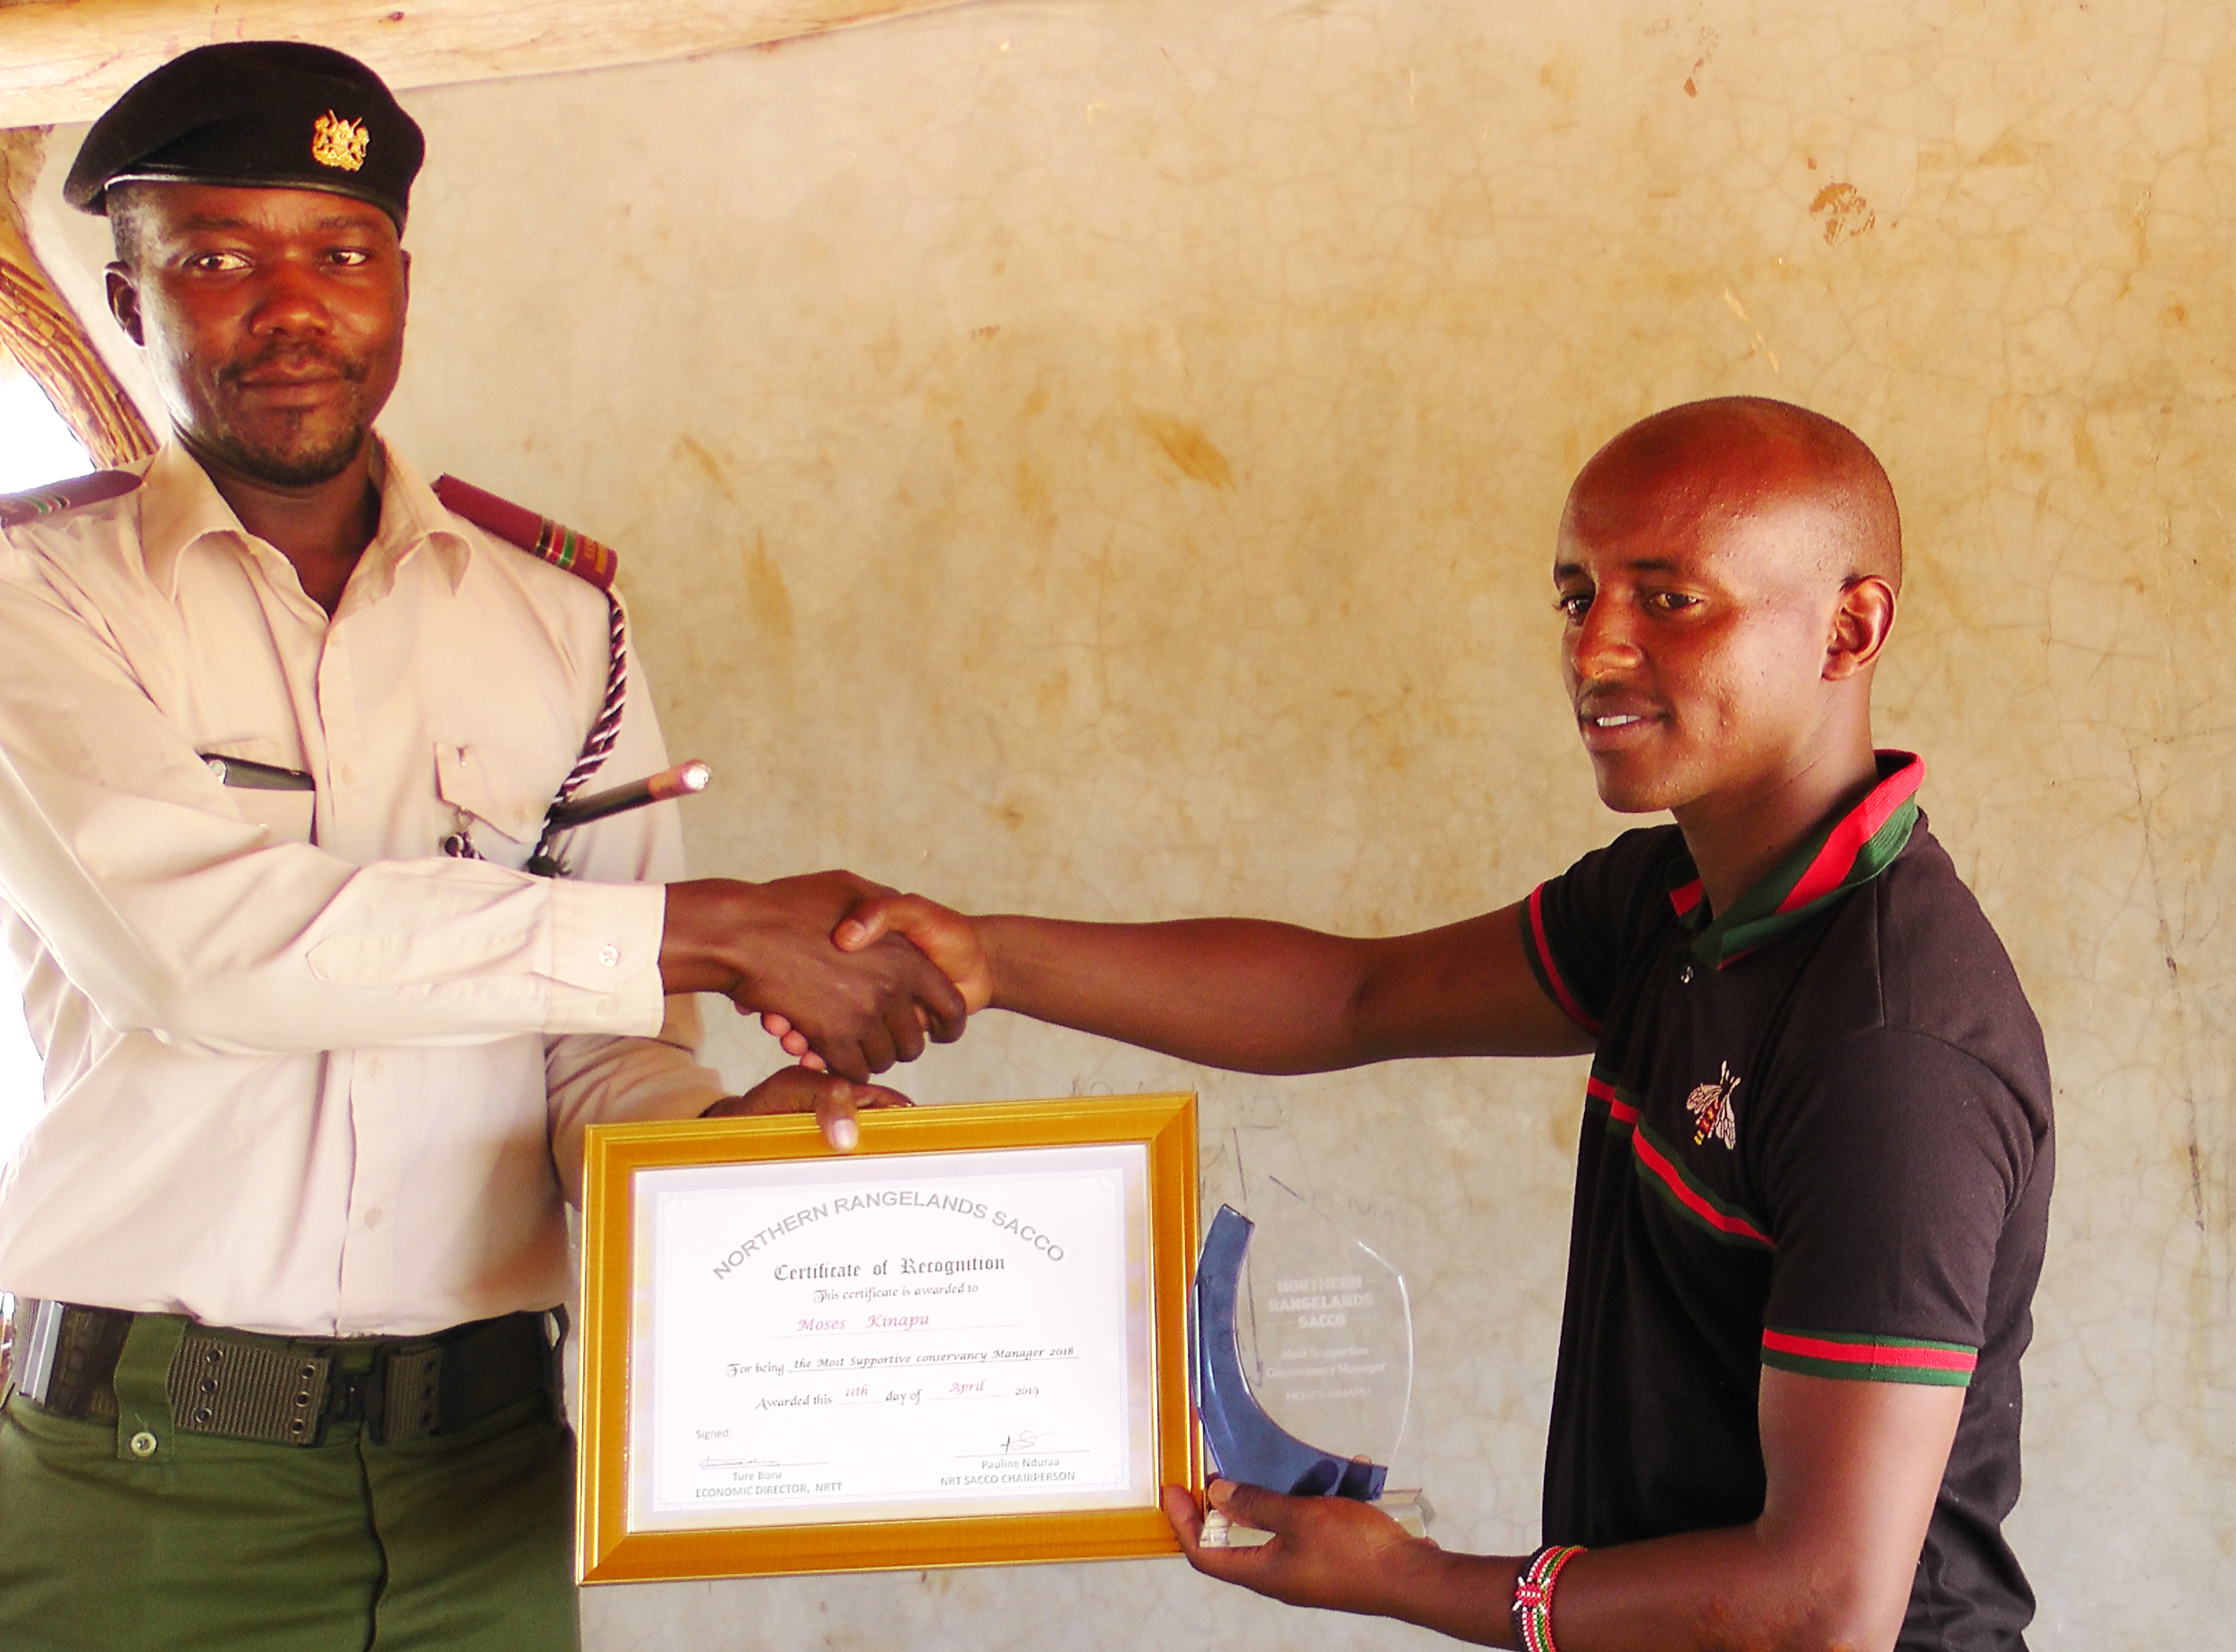 Moses Kinapu of Ltungai Conservancy won 'Most Supportive Conservancy Manager' in the SACCO